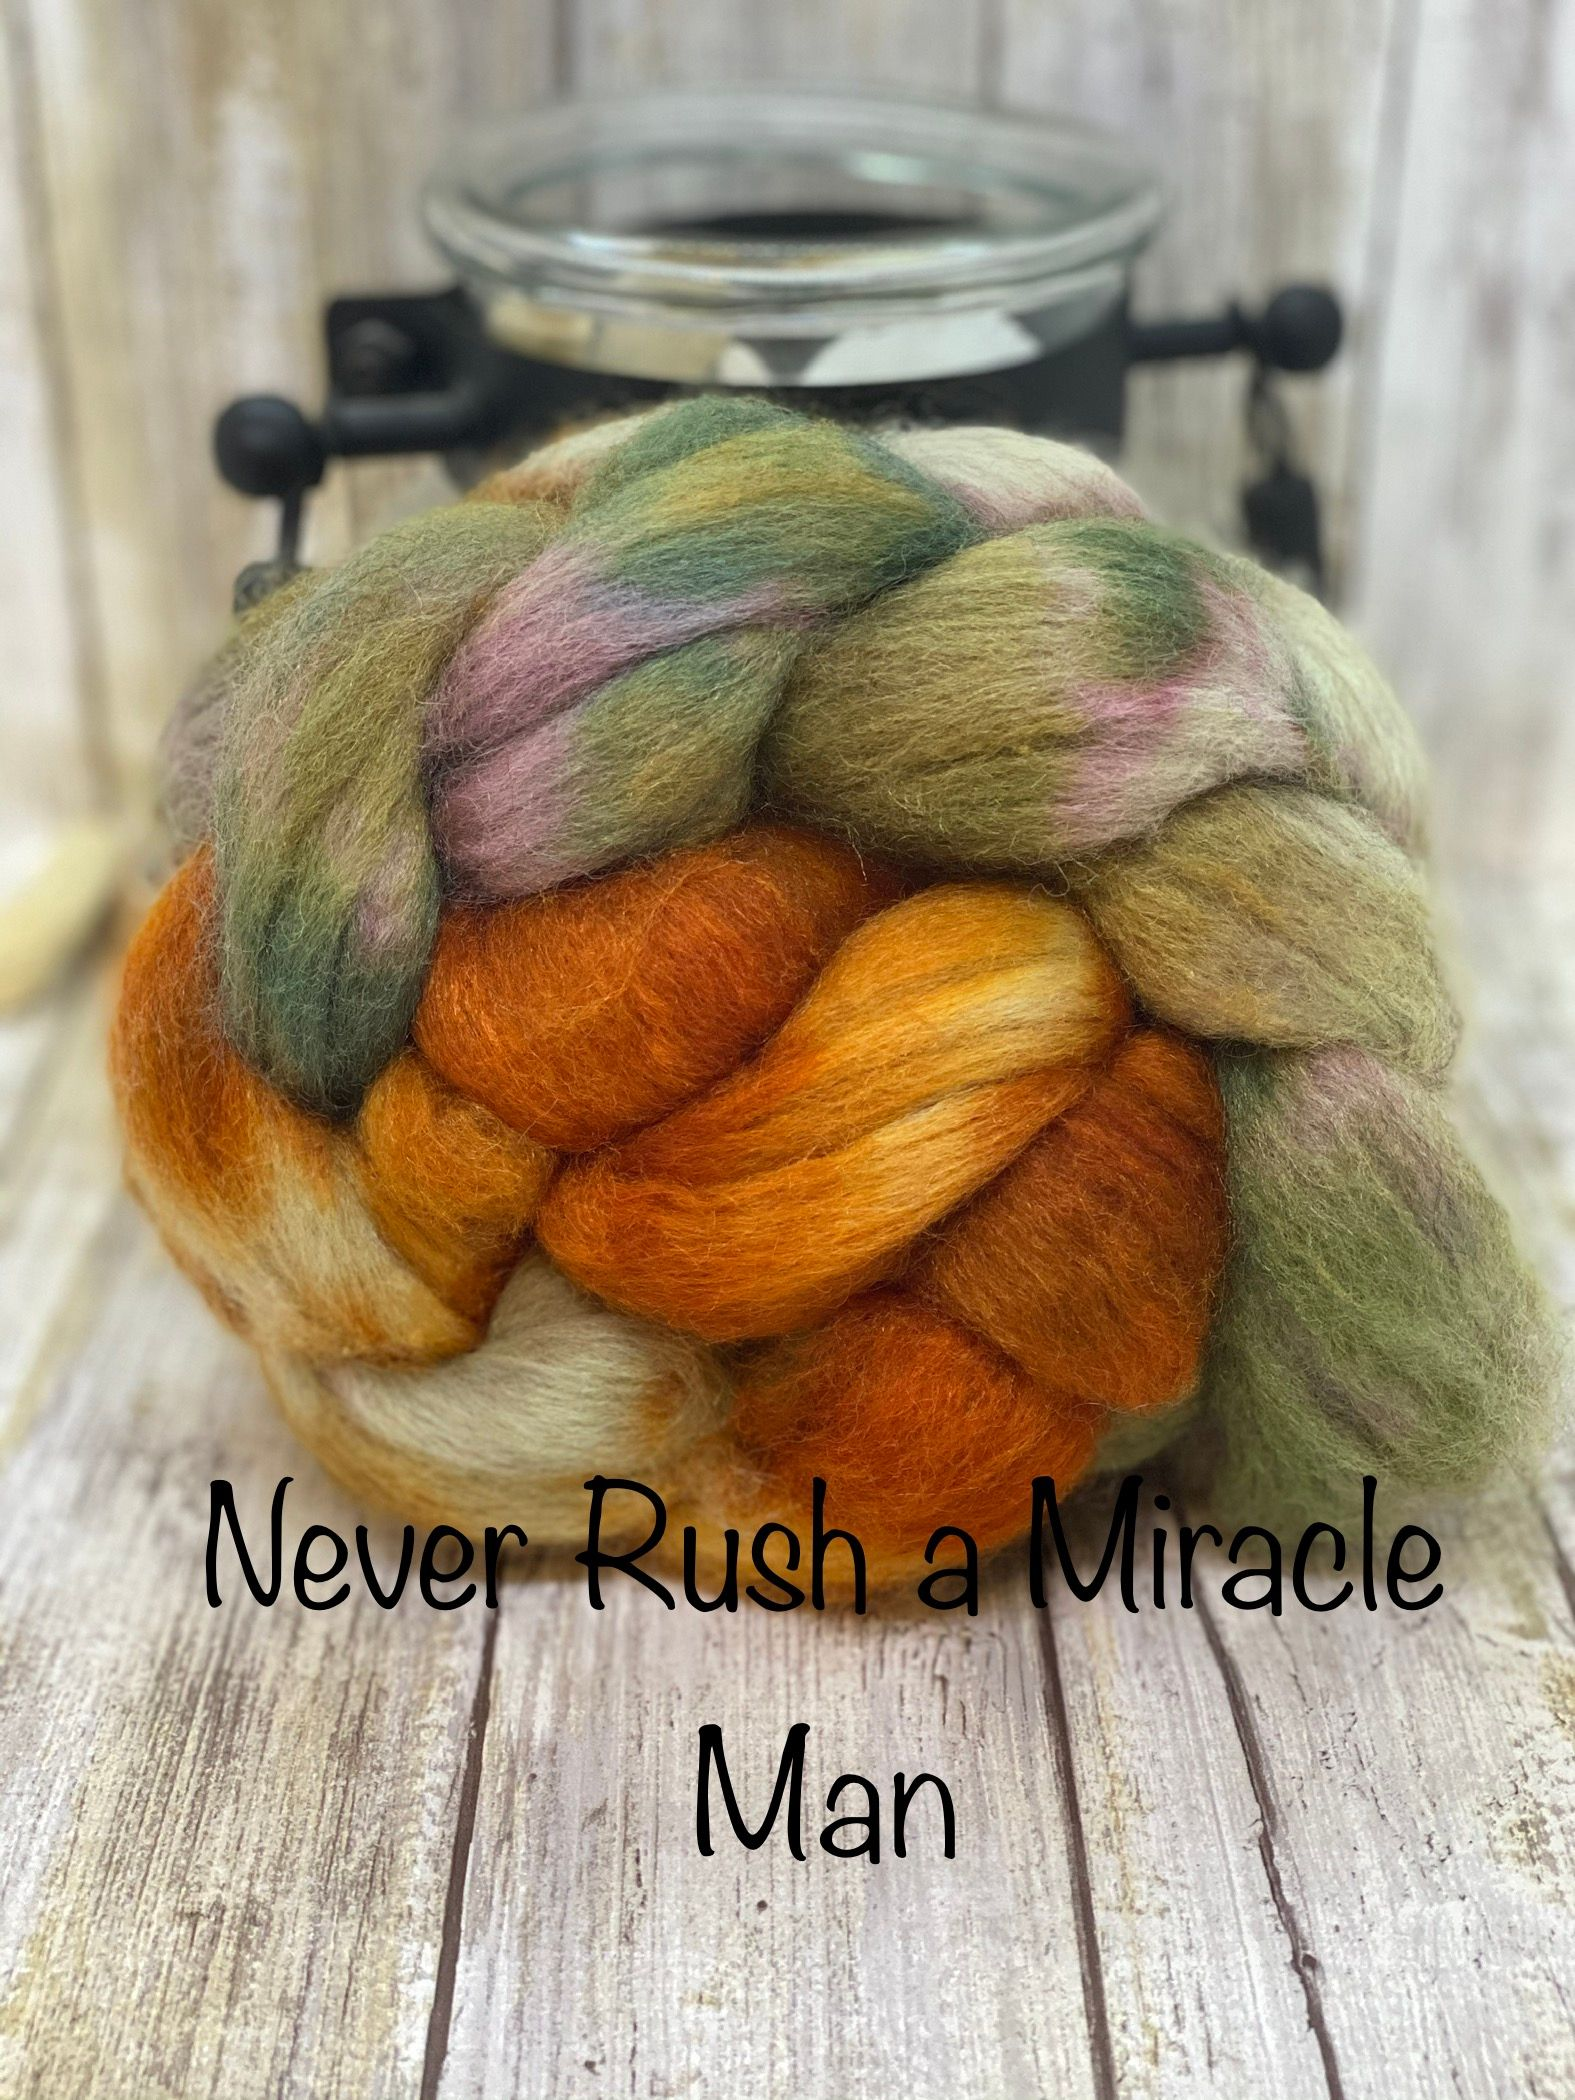 Princess Bride is the best movie ever - Fencing, Fighting, True Love.. And Miracles! Join us 10:00 Eastern. 7:00 Pacific Friday night October 23 on @woolandfiberarts to see our new collection! Roving, yarn, and shenanigans! Maybe even a Duel! #handmade #bfl #merinowool #yarn #handspunyarn #handspun #spinnersoftheworld #spinning #spinningfiber #fibercrafty #spinningwheel #felting #handdyed #indiefiber #handspinner #feltingwool #woollove #spinersofinstagram #ravelry #roving